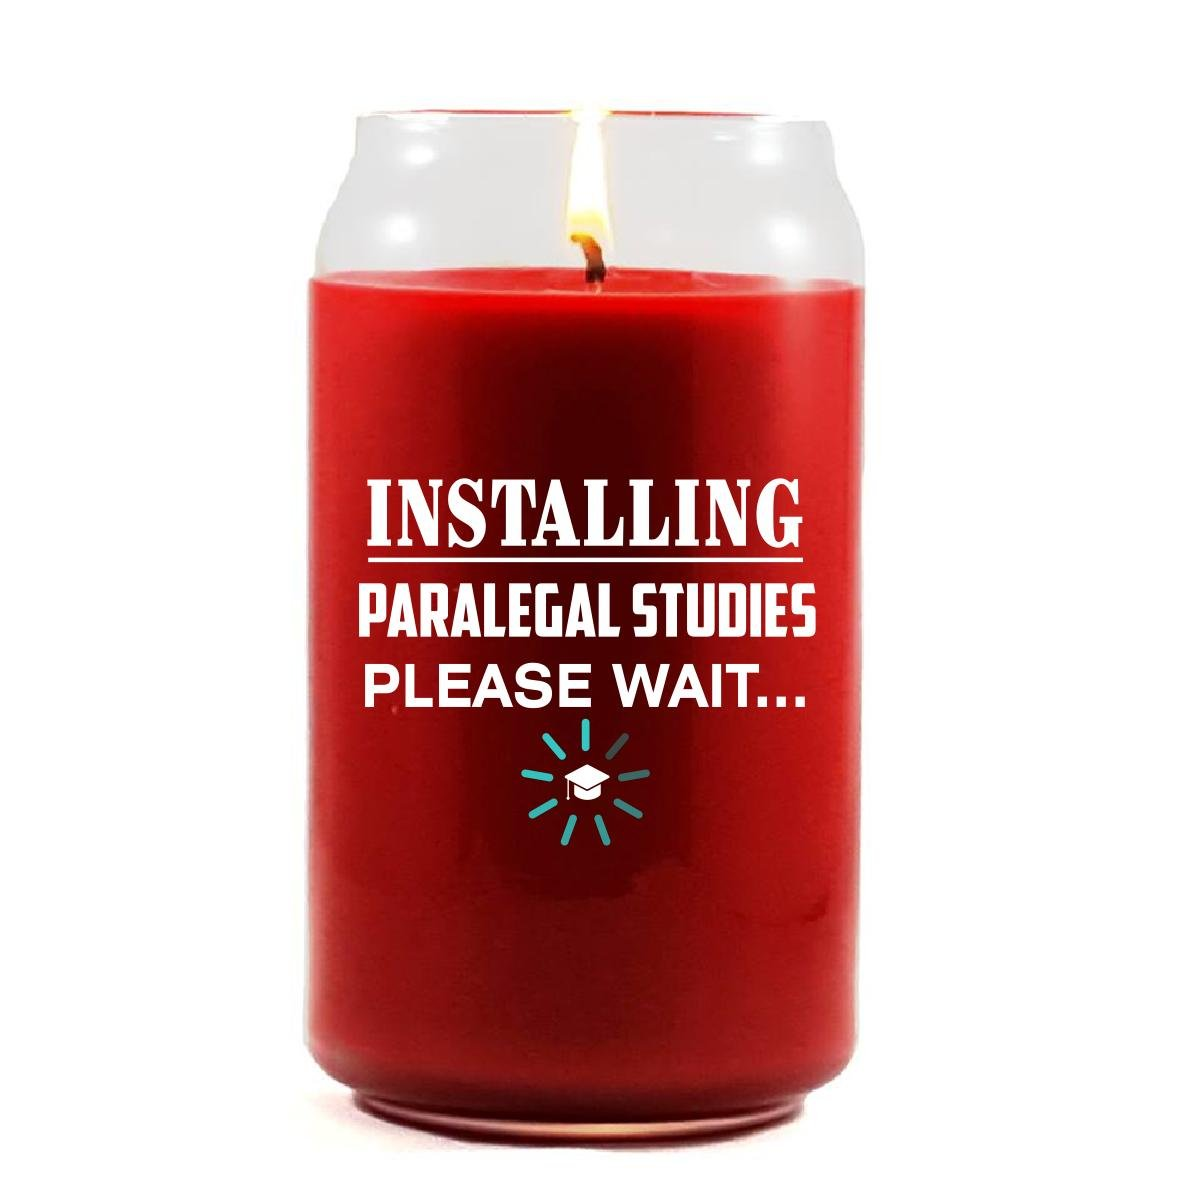 Installing PARALEGAL STUDIES Please Wait College Degree - Scented Candle by Brands Banned (Image #1)